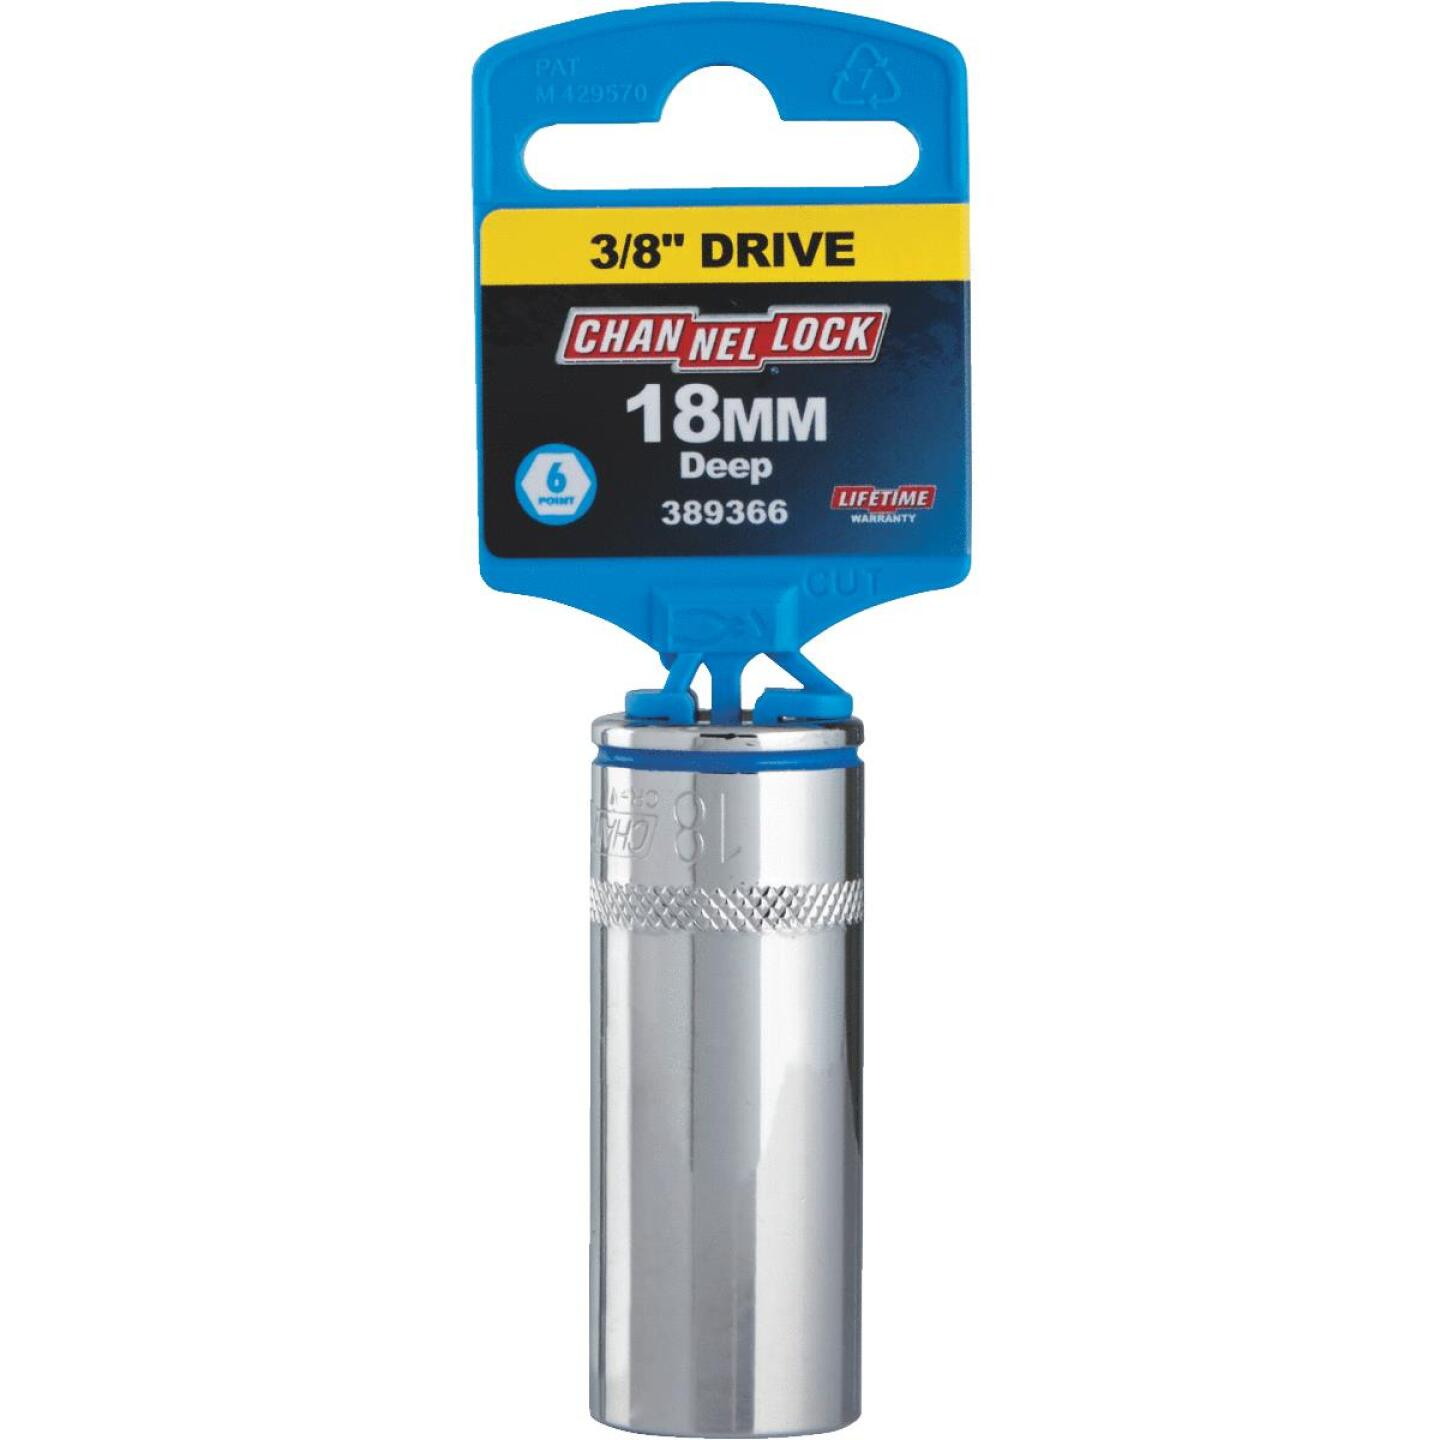 Channellock 3/8 In. Drive 18 mm 6-Point Deep Metric Socket Image 2